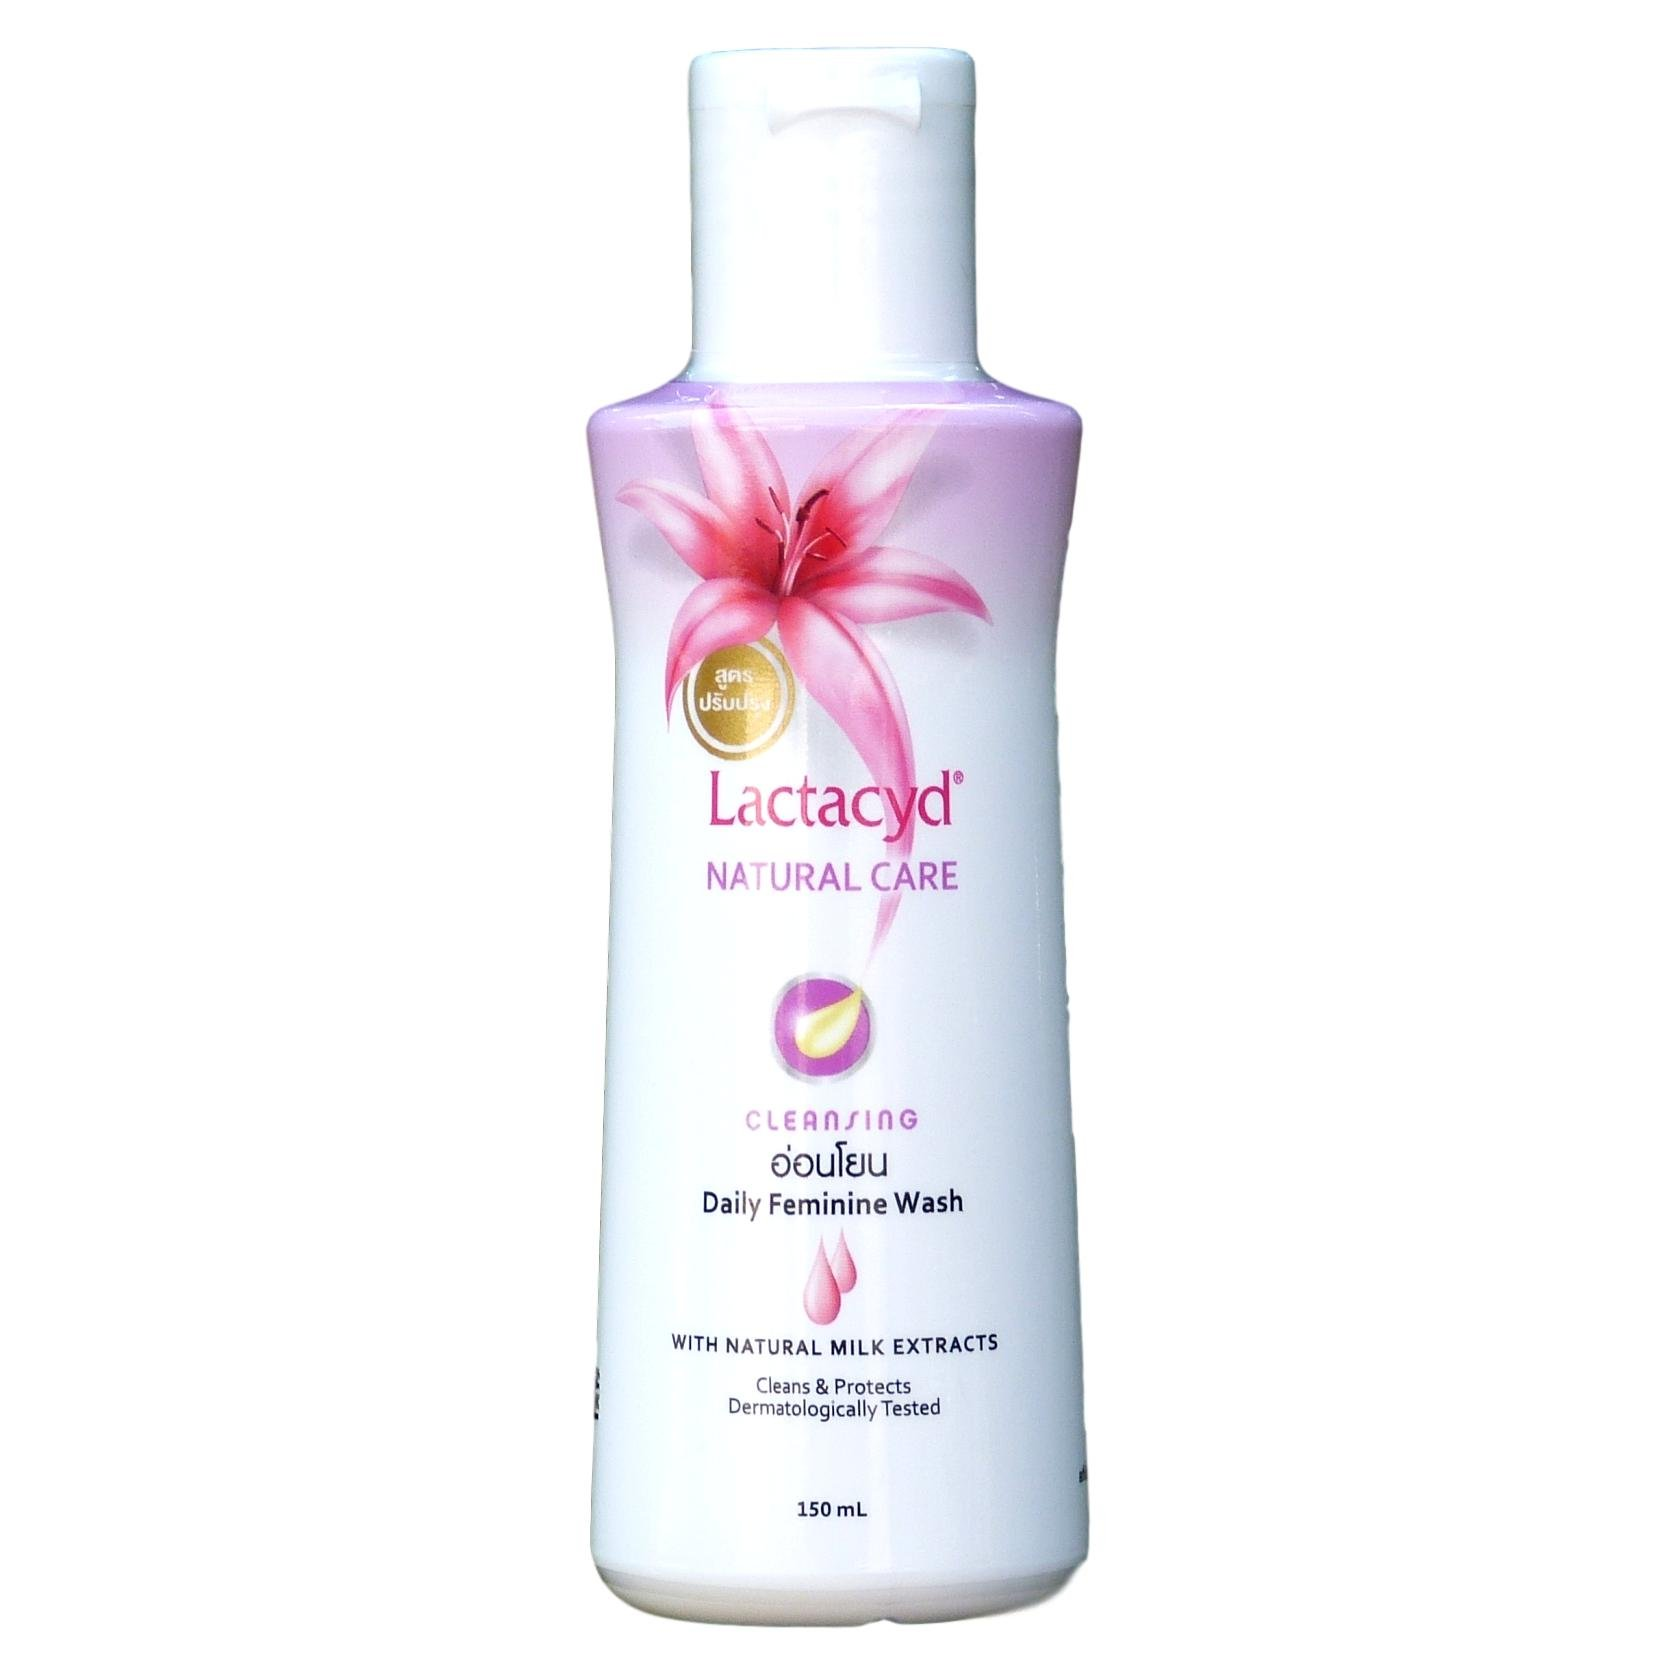 Lactacyd Natural Care Cleansing Feminine Wash with Natural Milk Extracts 150ml